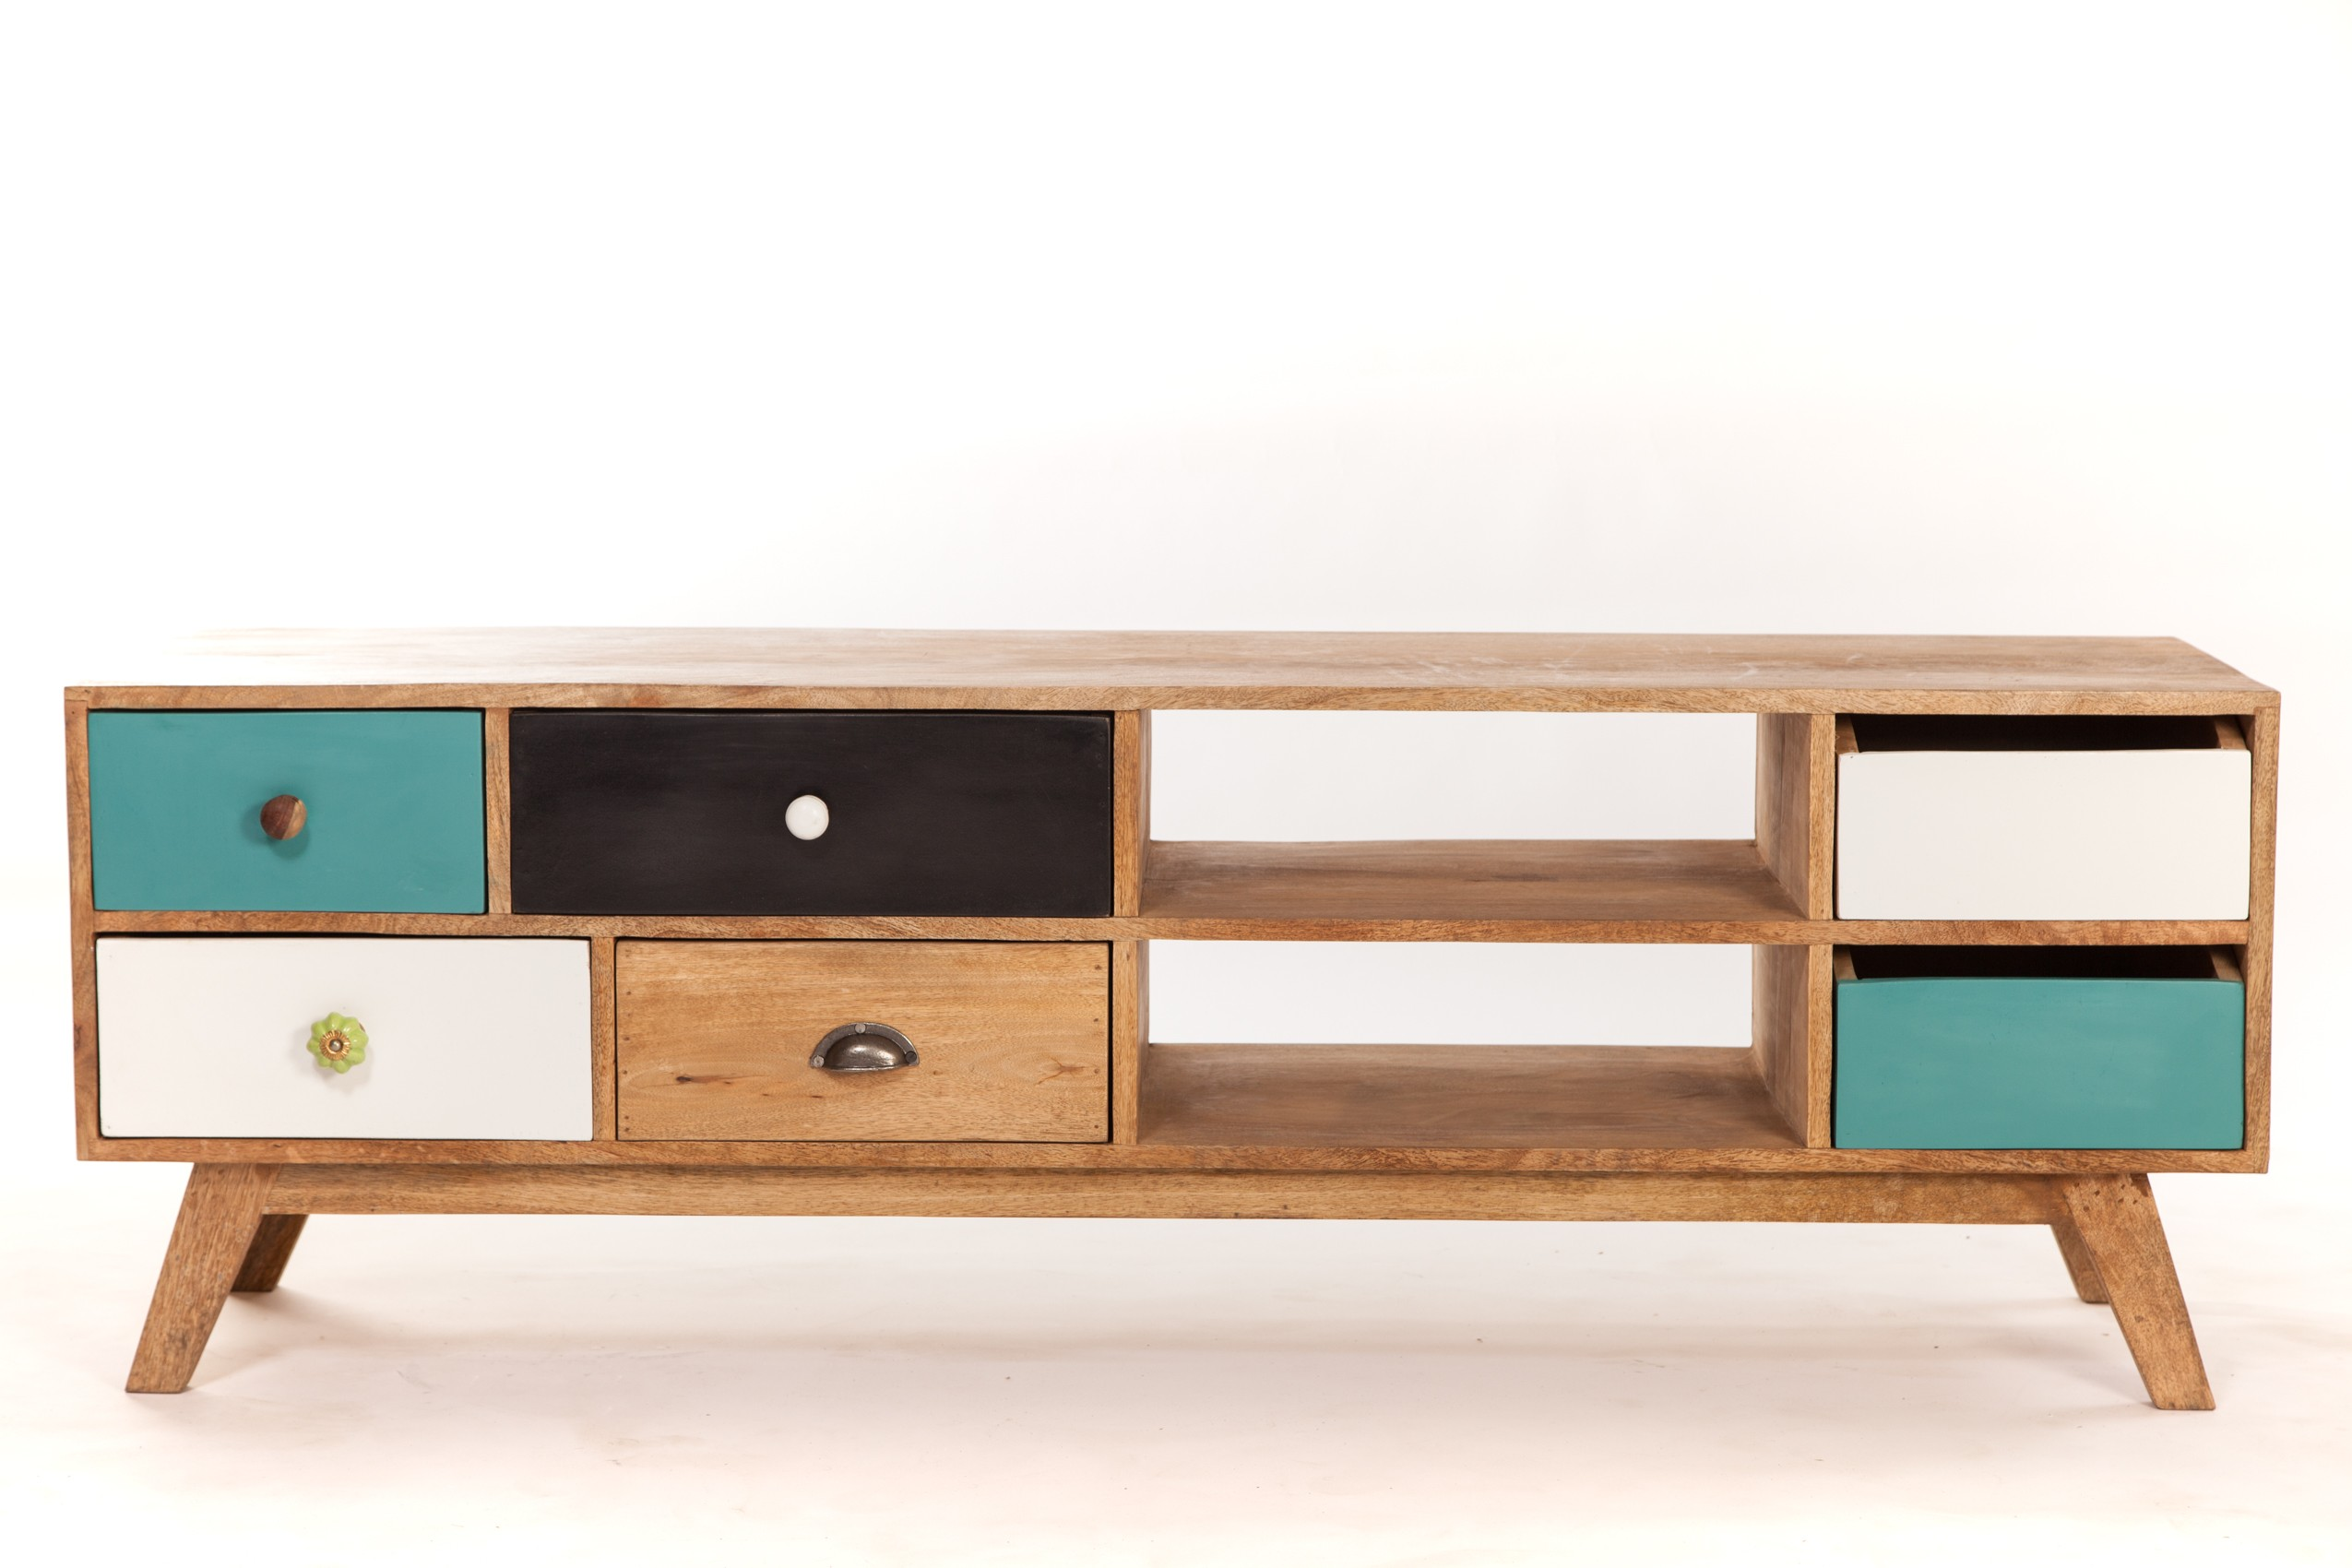 Meuble Tv Scandinave But Maison Et Mobilier D Int Rieur # Meuble Tv Qui S'Allume